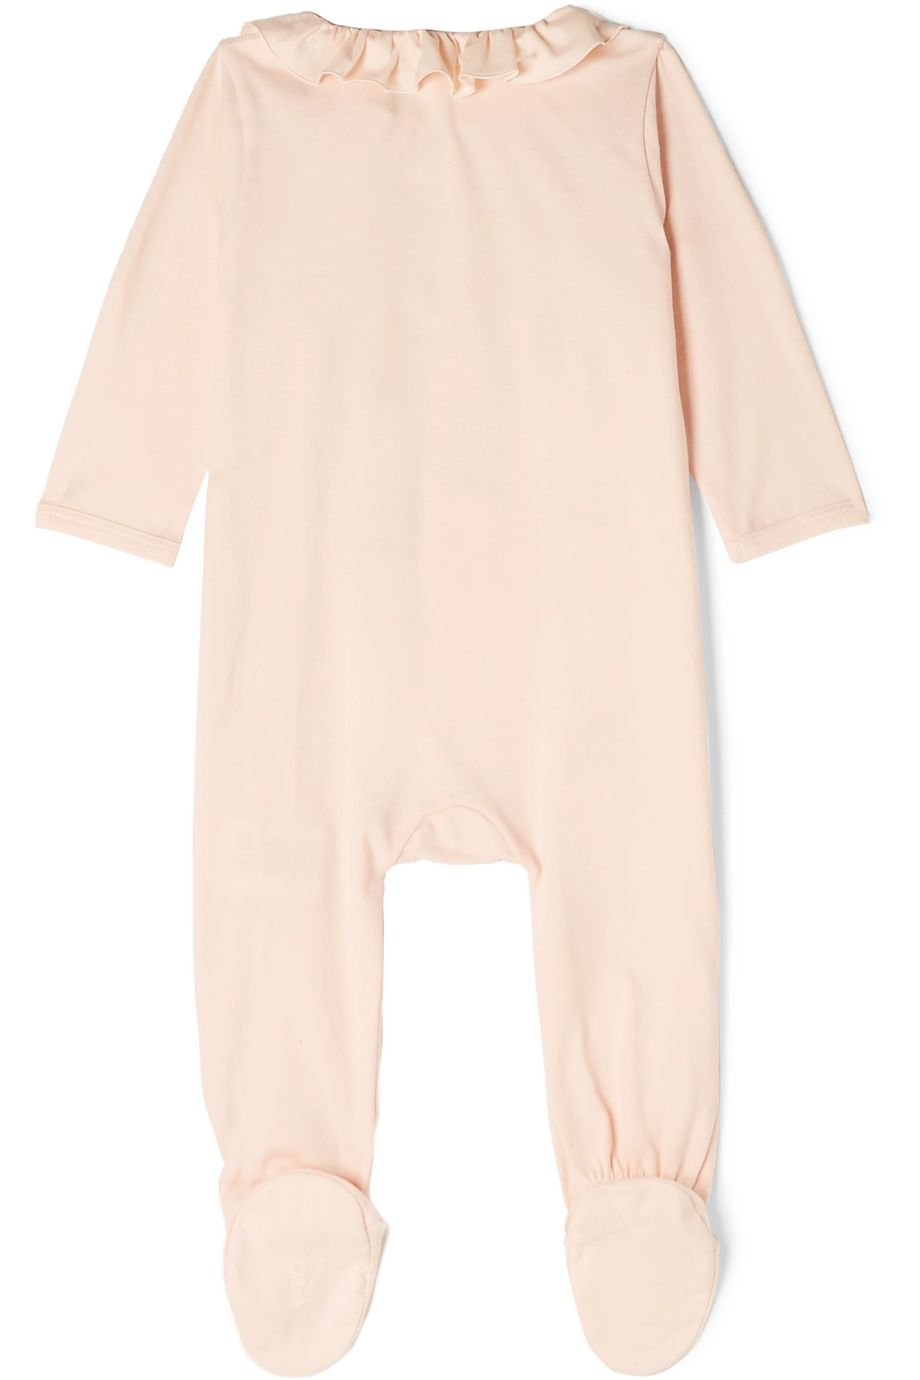 Chloé Kids Months 1-18 ruffled embroidered cotton-jersey onesie